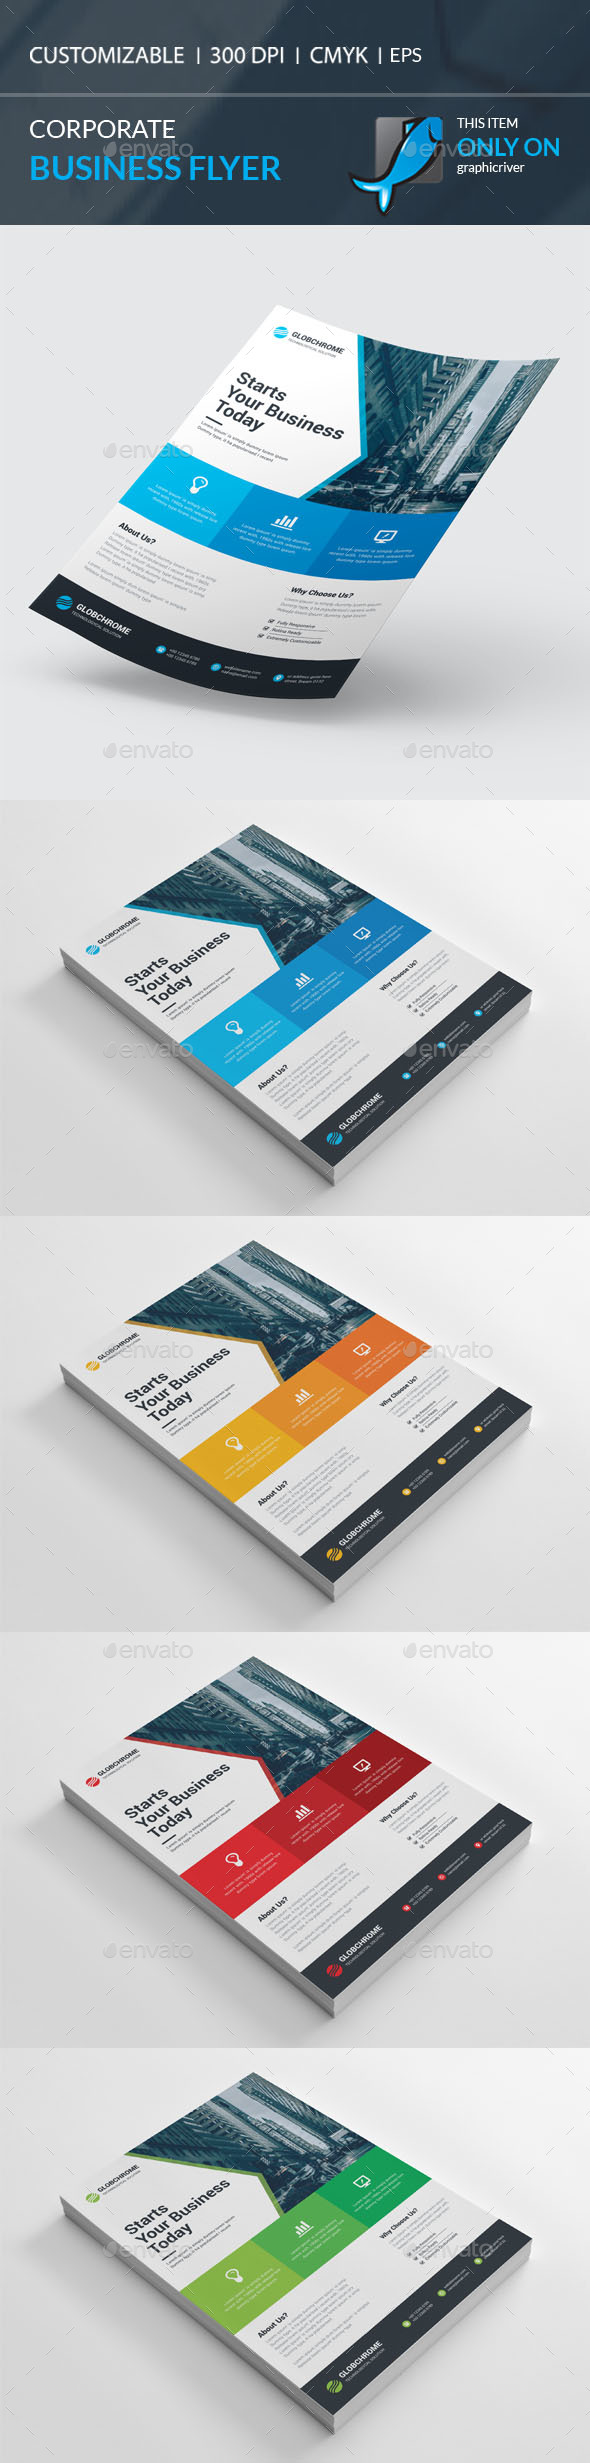 Corporate Flyer Template Vector EPS, AI. Download here: http://graphicriver.net/item/corporate-flyer/15562782?ref=ksioks